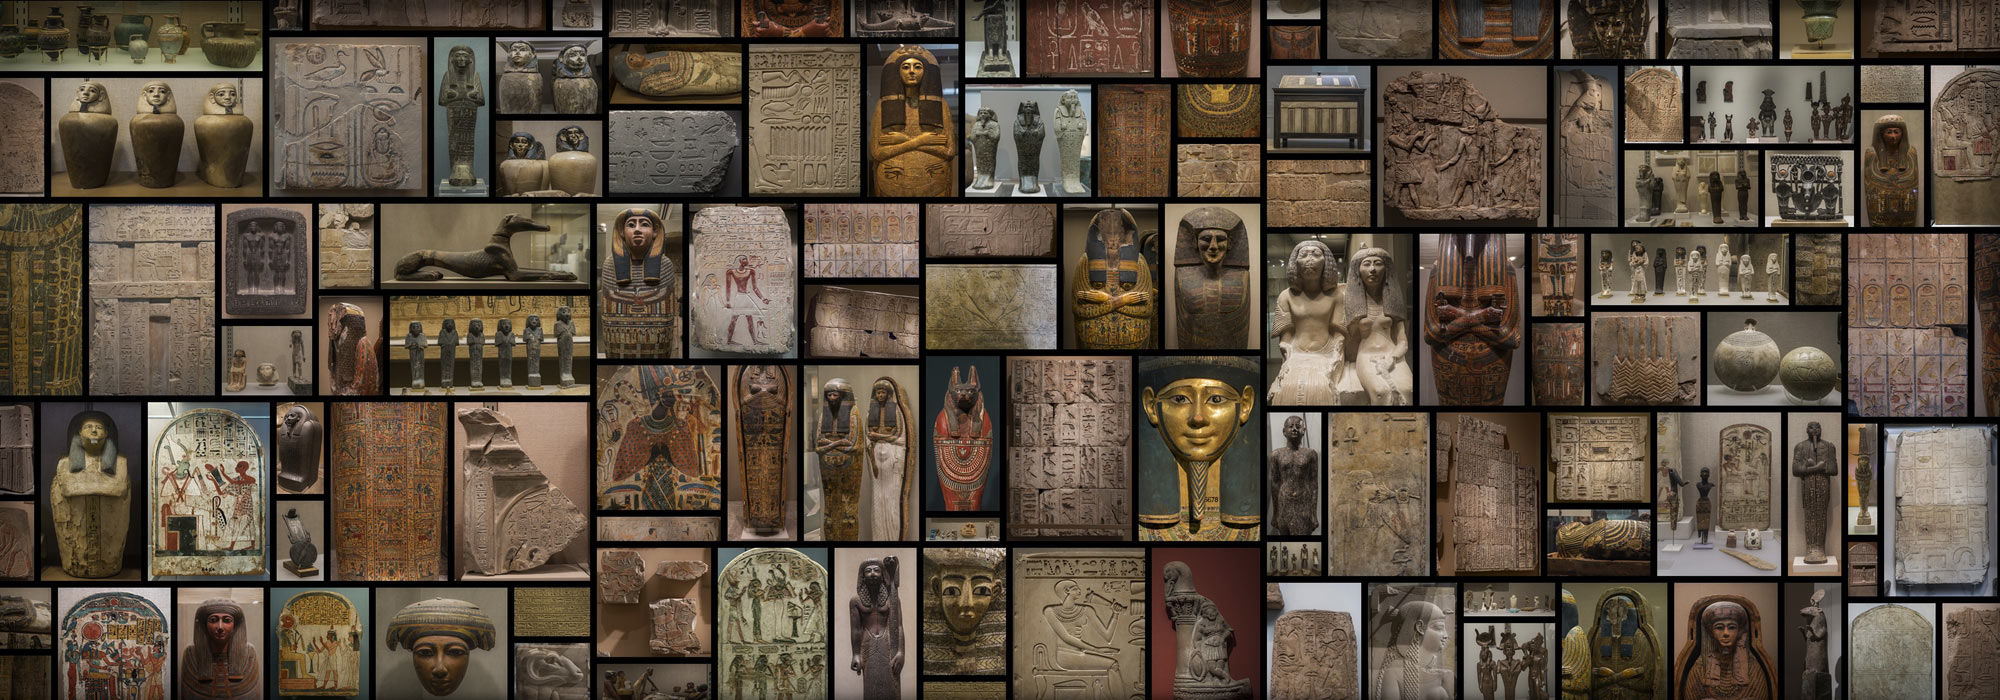 Egyptian Artifacts Ancient Relics